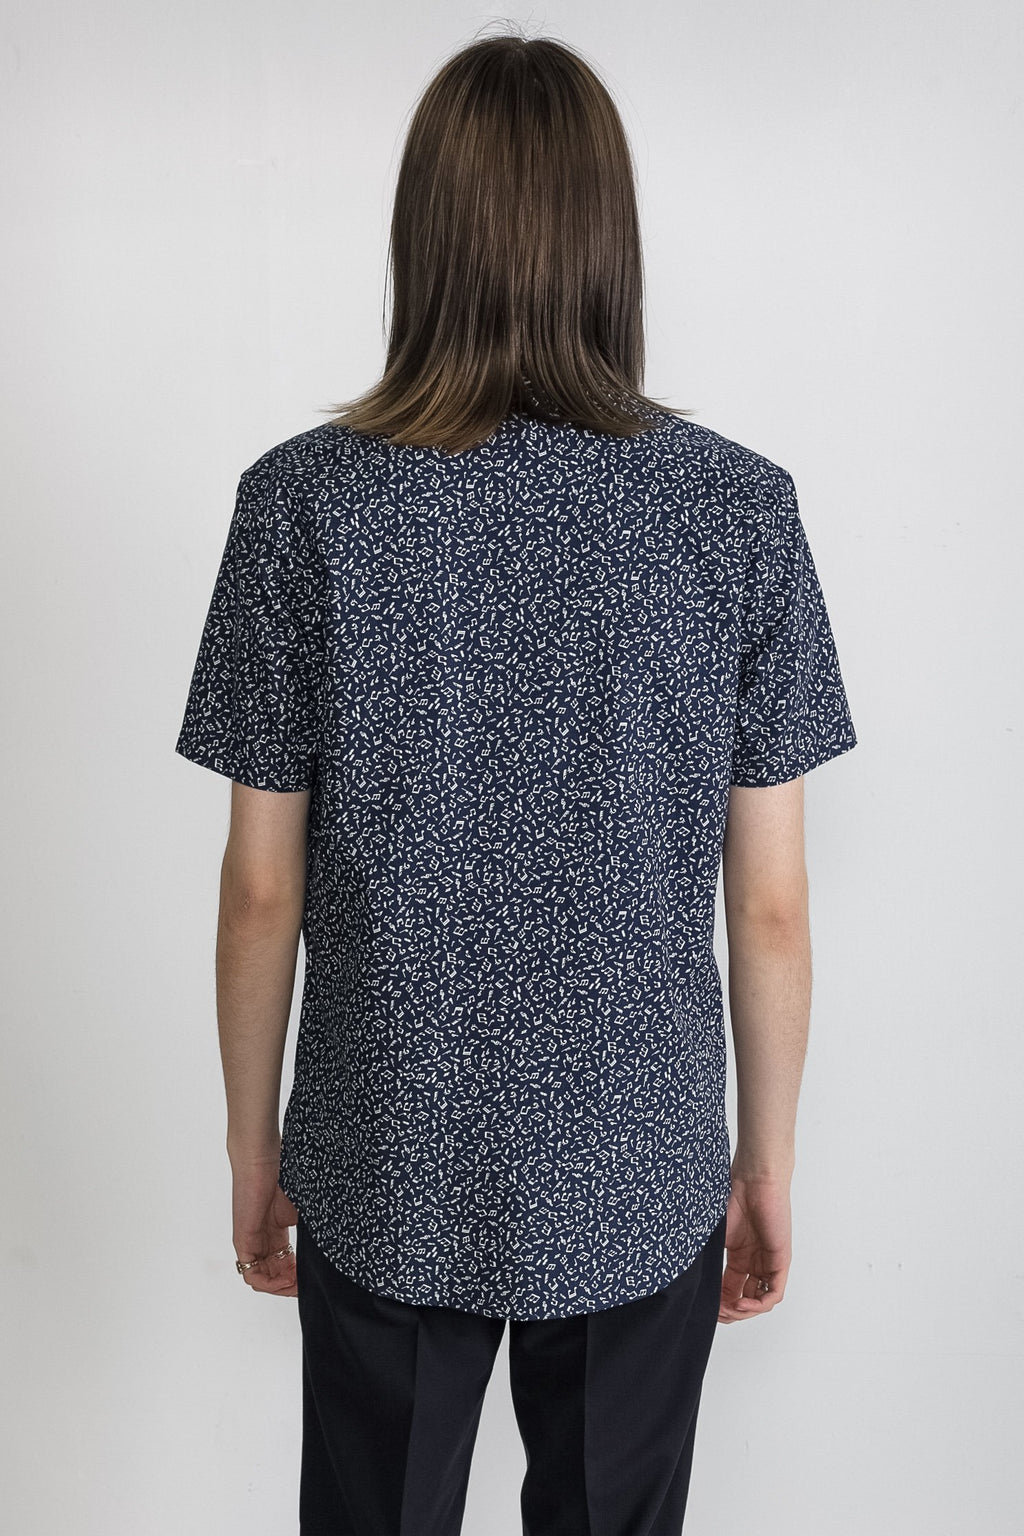 Japanese Musician Print in Navy 006